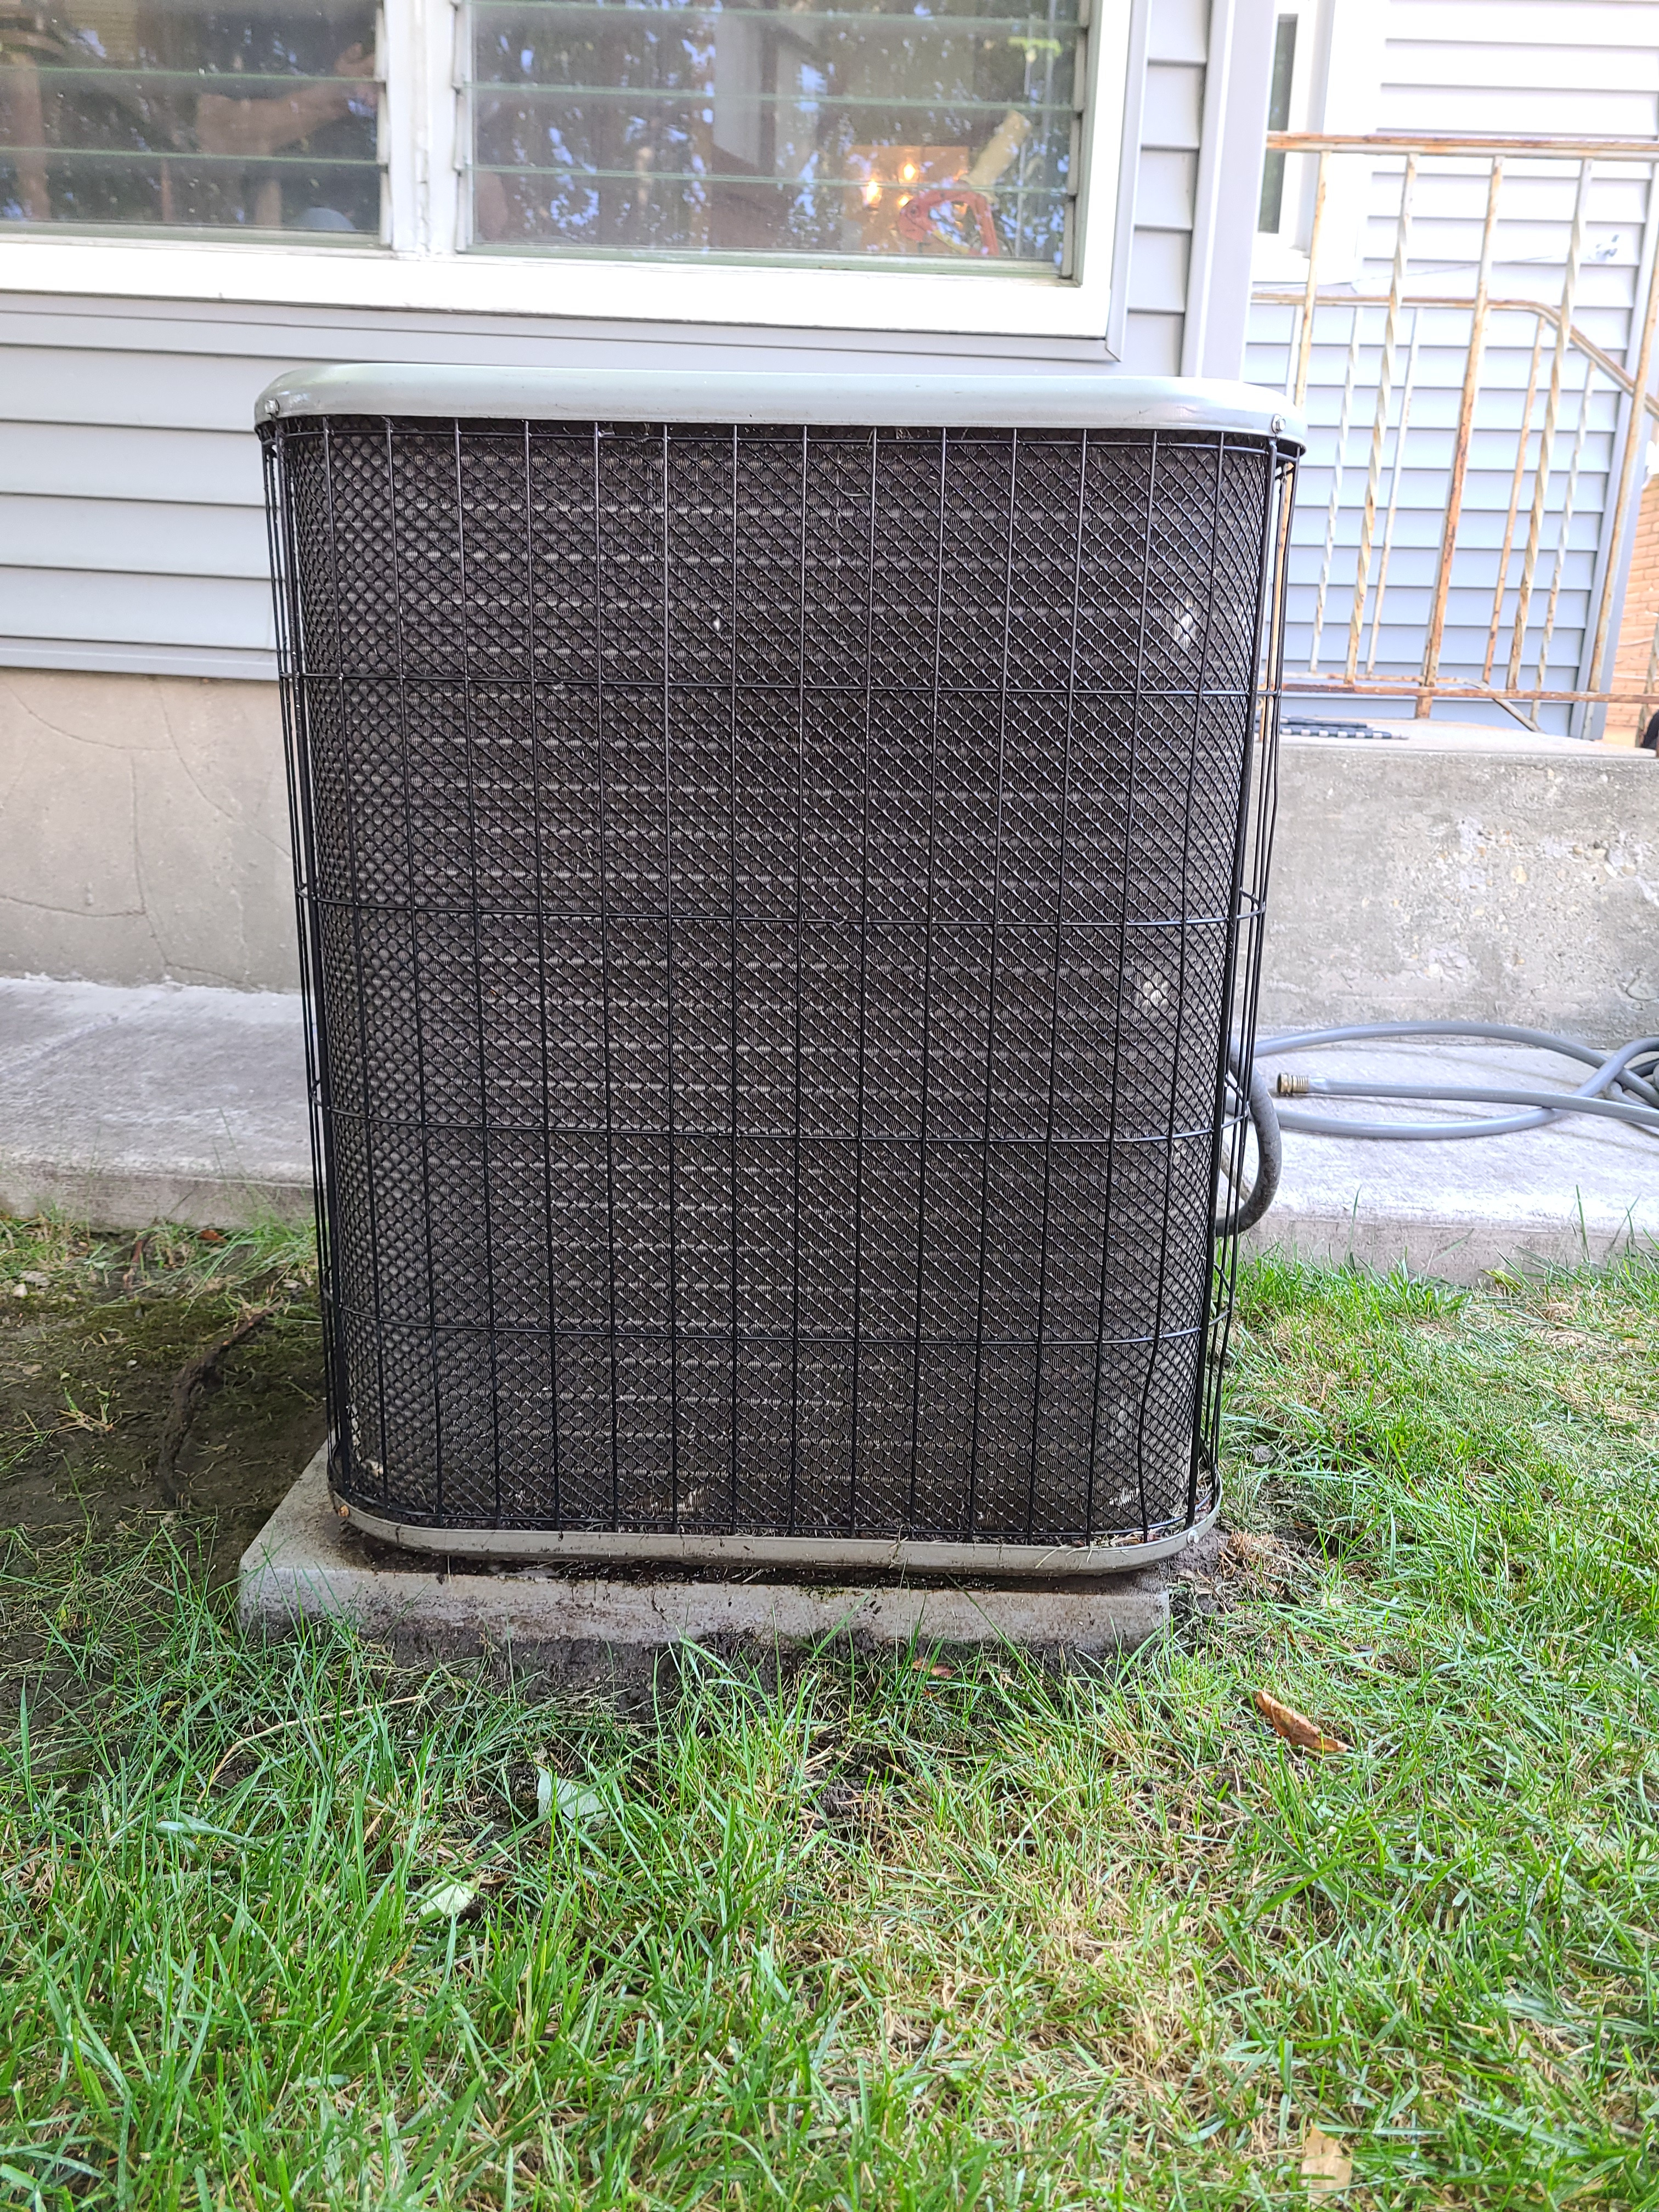 Photo of Lennox unit after CTS